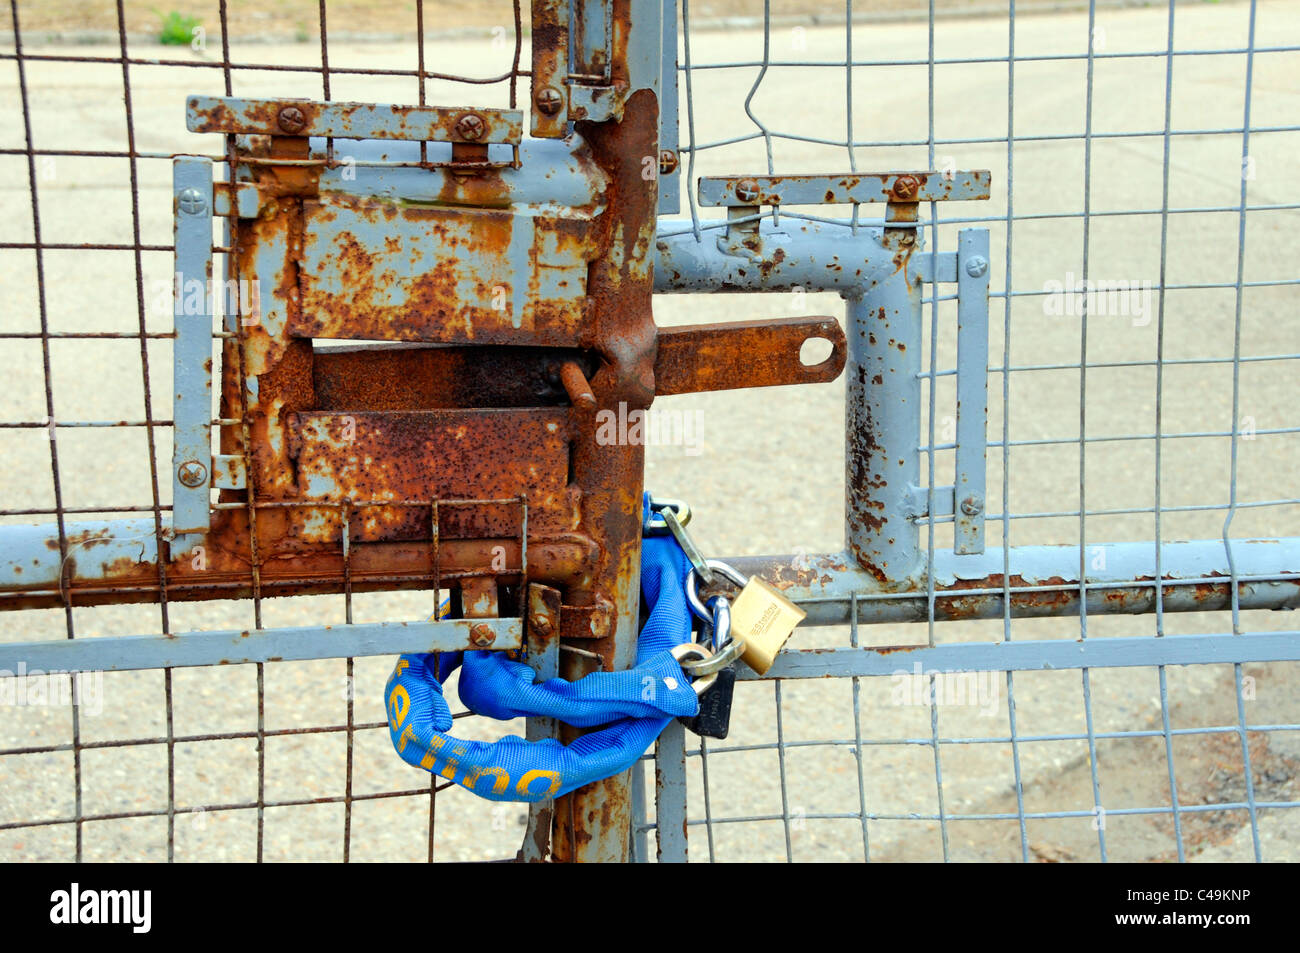 Padlock and chain around entrance gates to disused premises concept image for subjects including redundancy closure - Stock Image